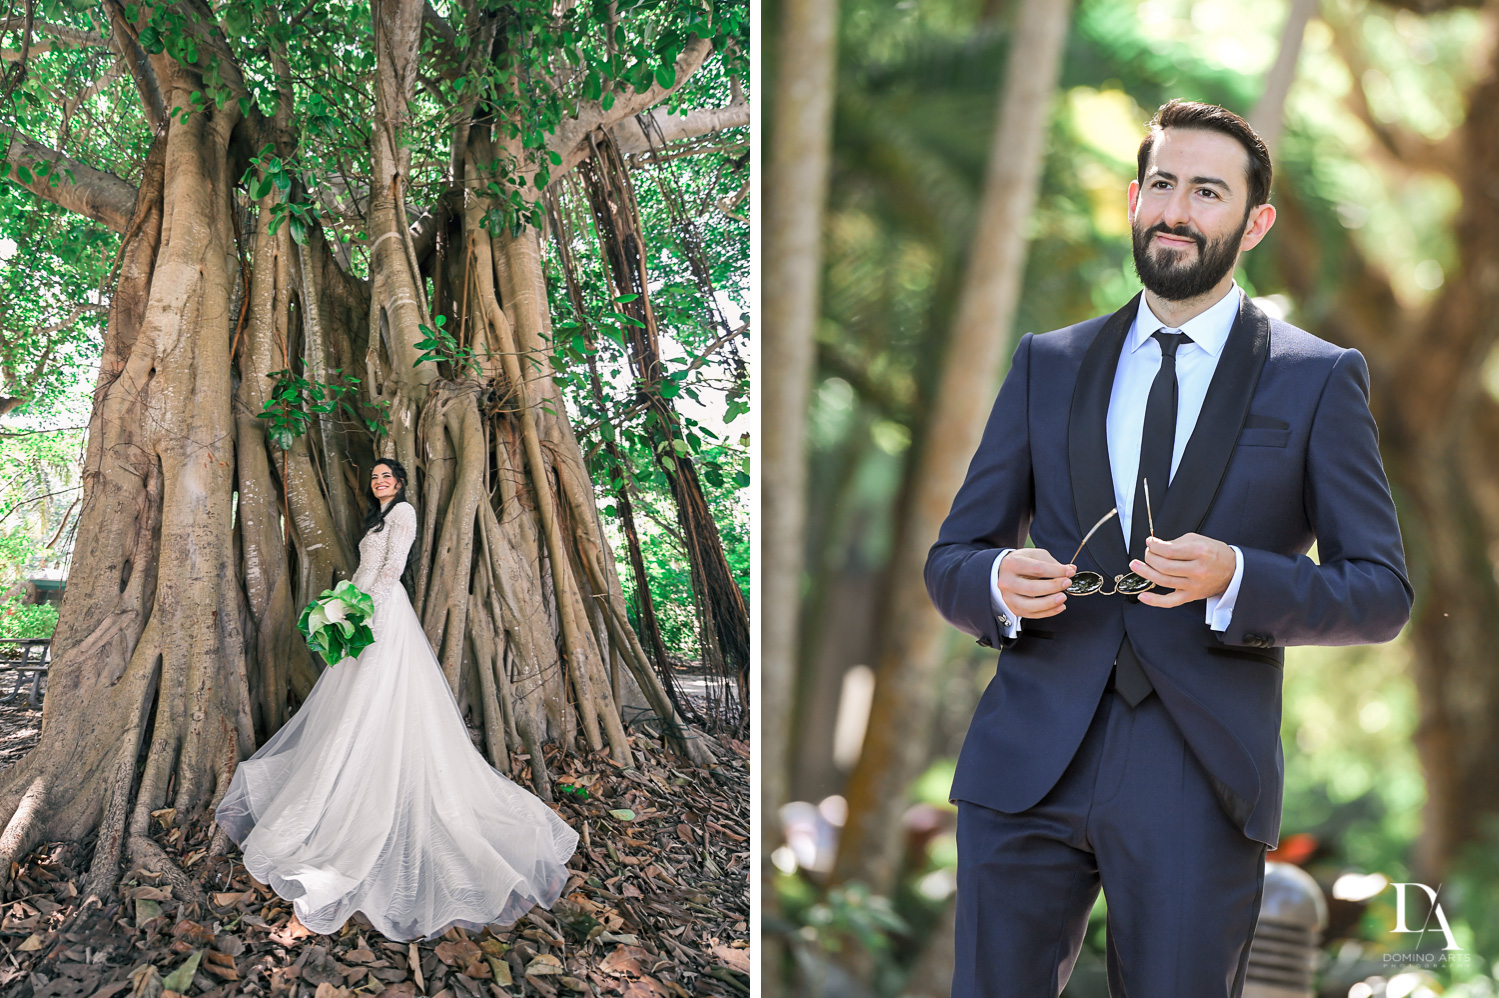 creative portraits at Traditional Jewish Wedding at Deering Estate Miami by Domino Arts Photography